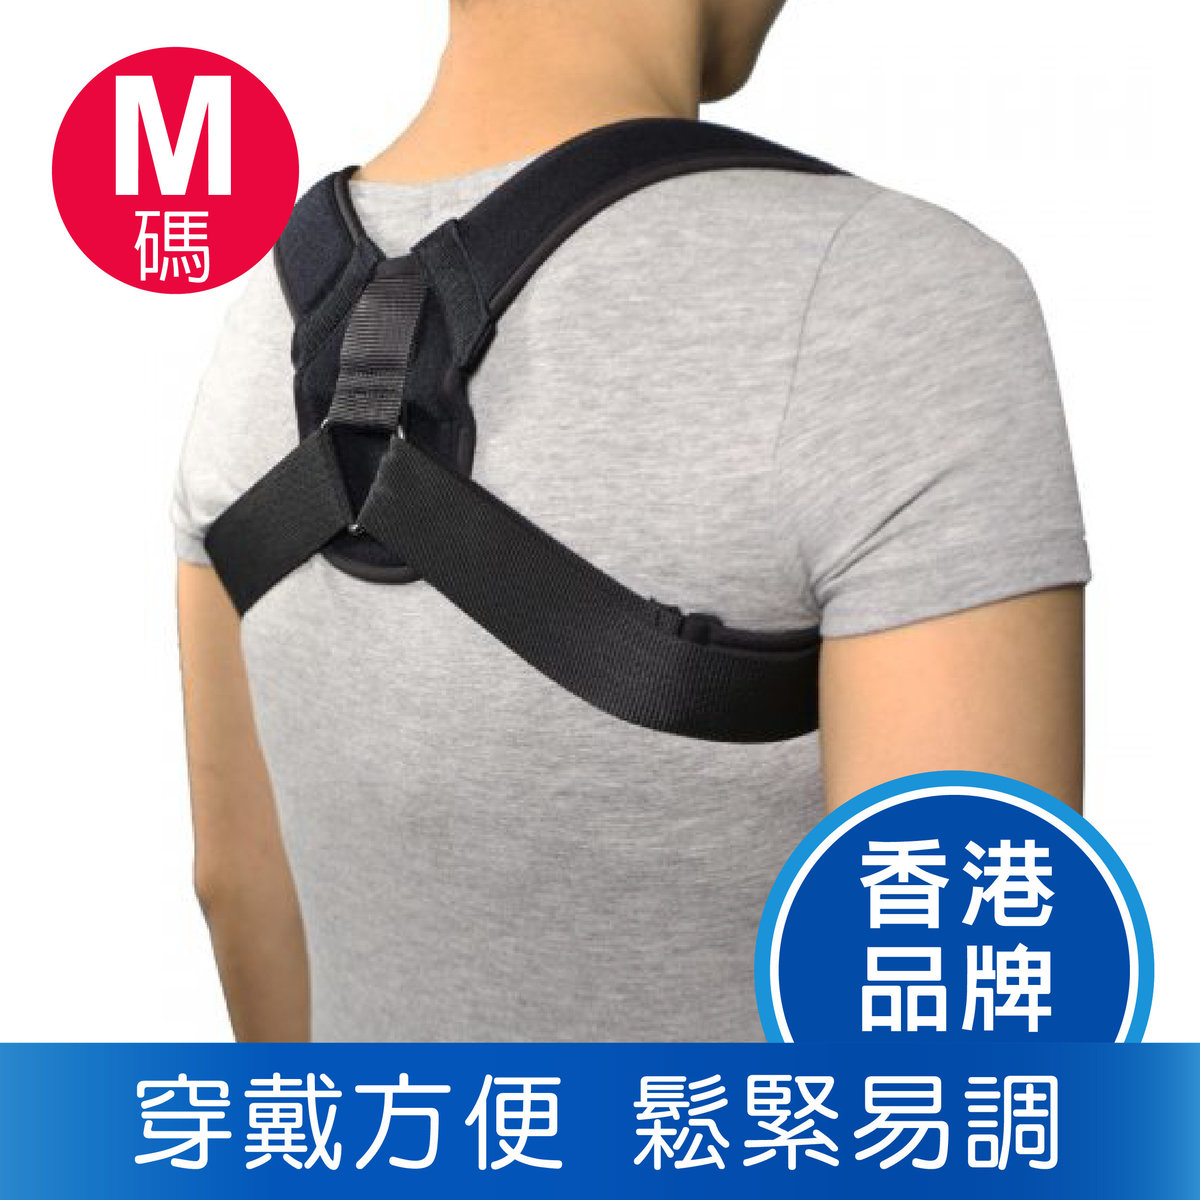 Posture Support Size M